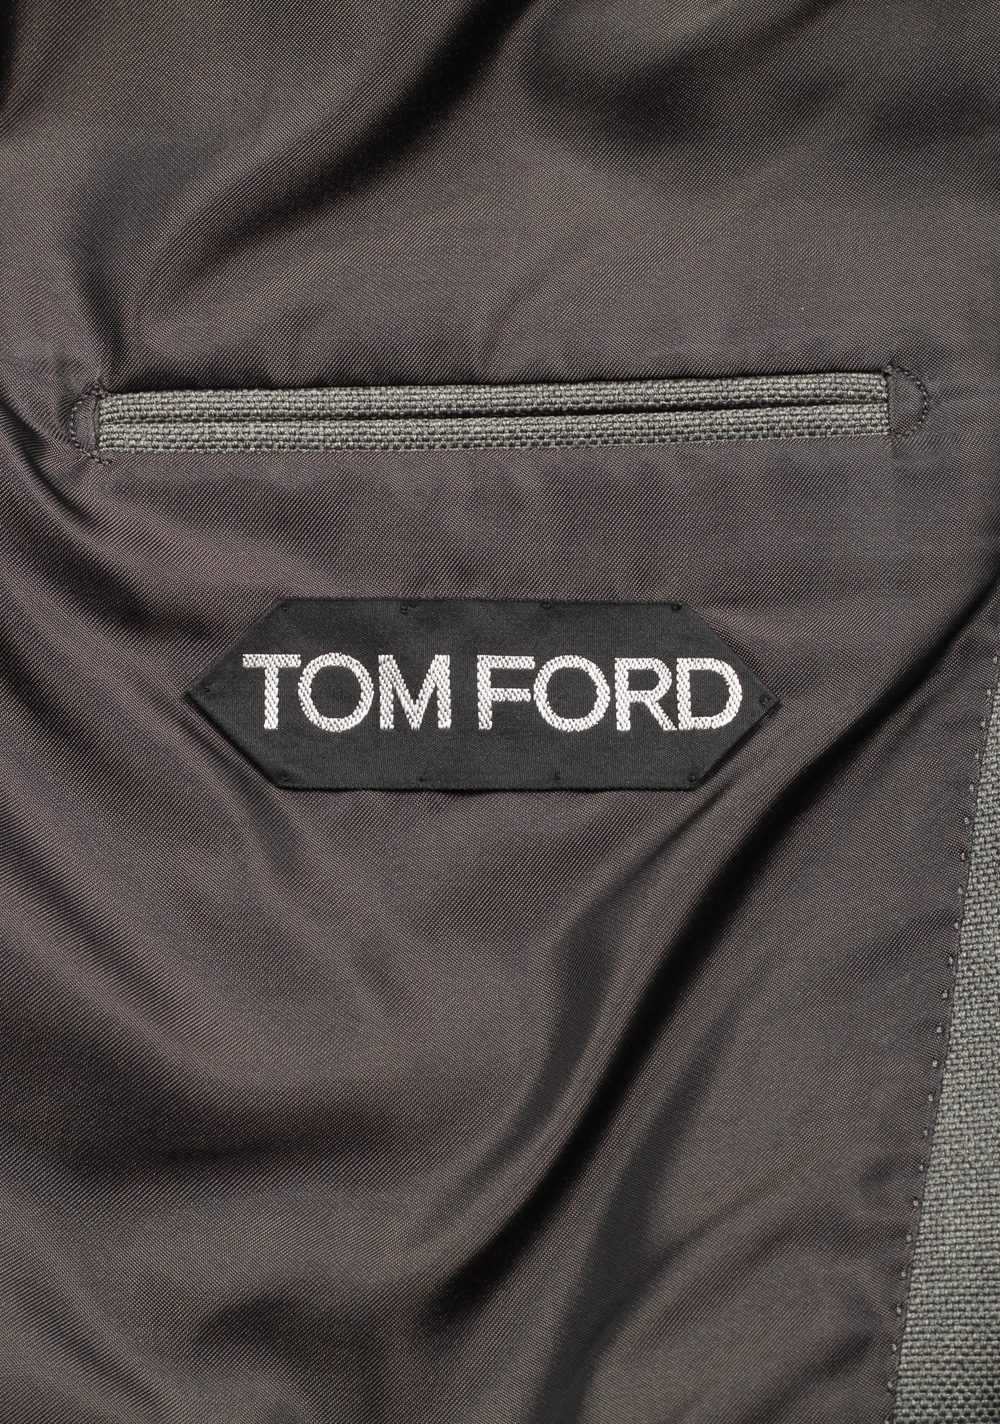 TOM FORD Shelton Double Breasted Gray Sport Coat Size 46 / 36R In Wool | Costume Limité